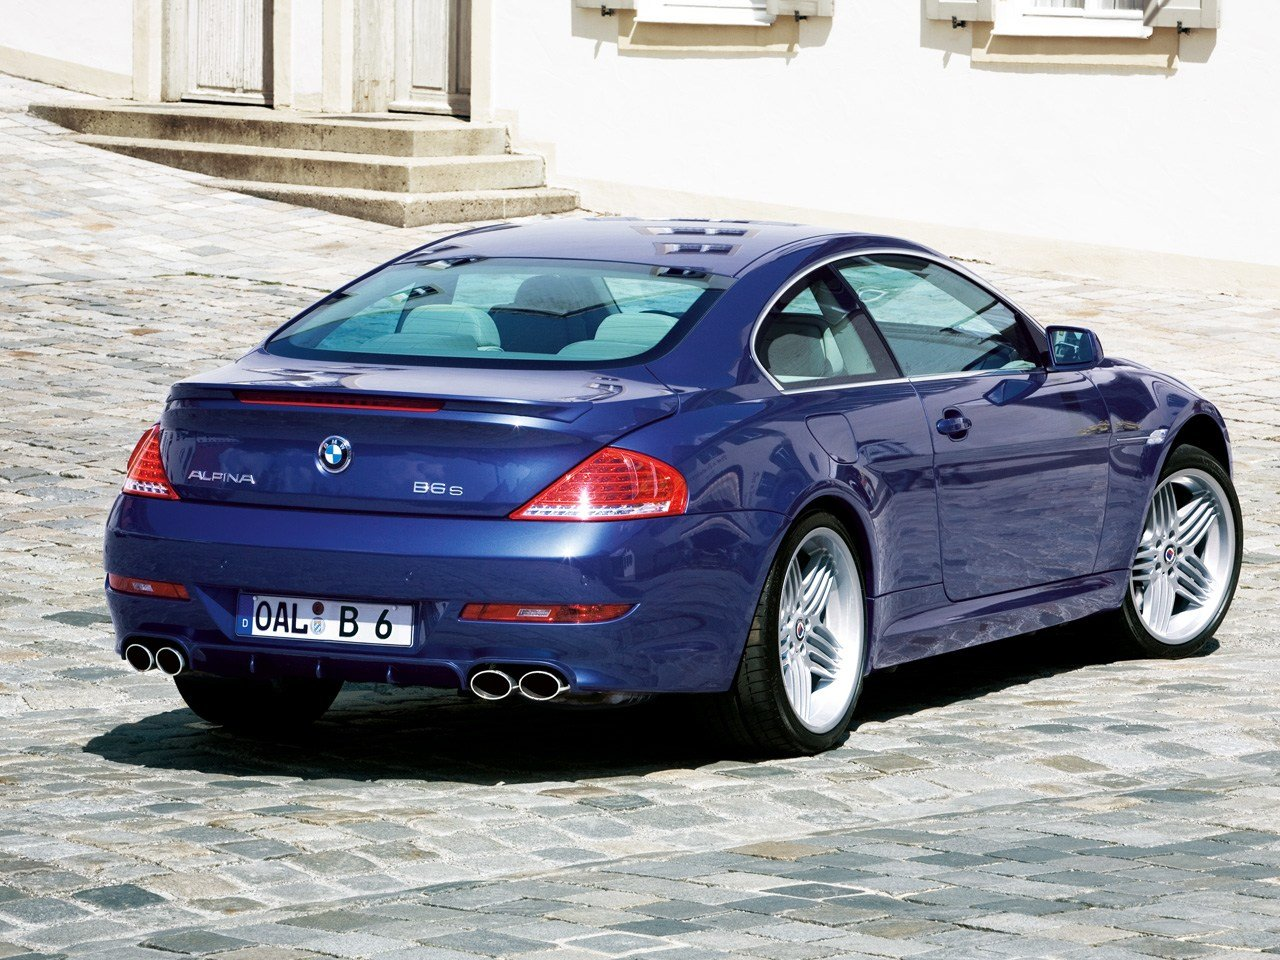 Latest Bmw Alpina 23 Free Car Wallpaper Carwallpapersfordesktop Org Free Download